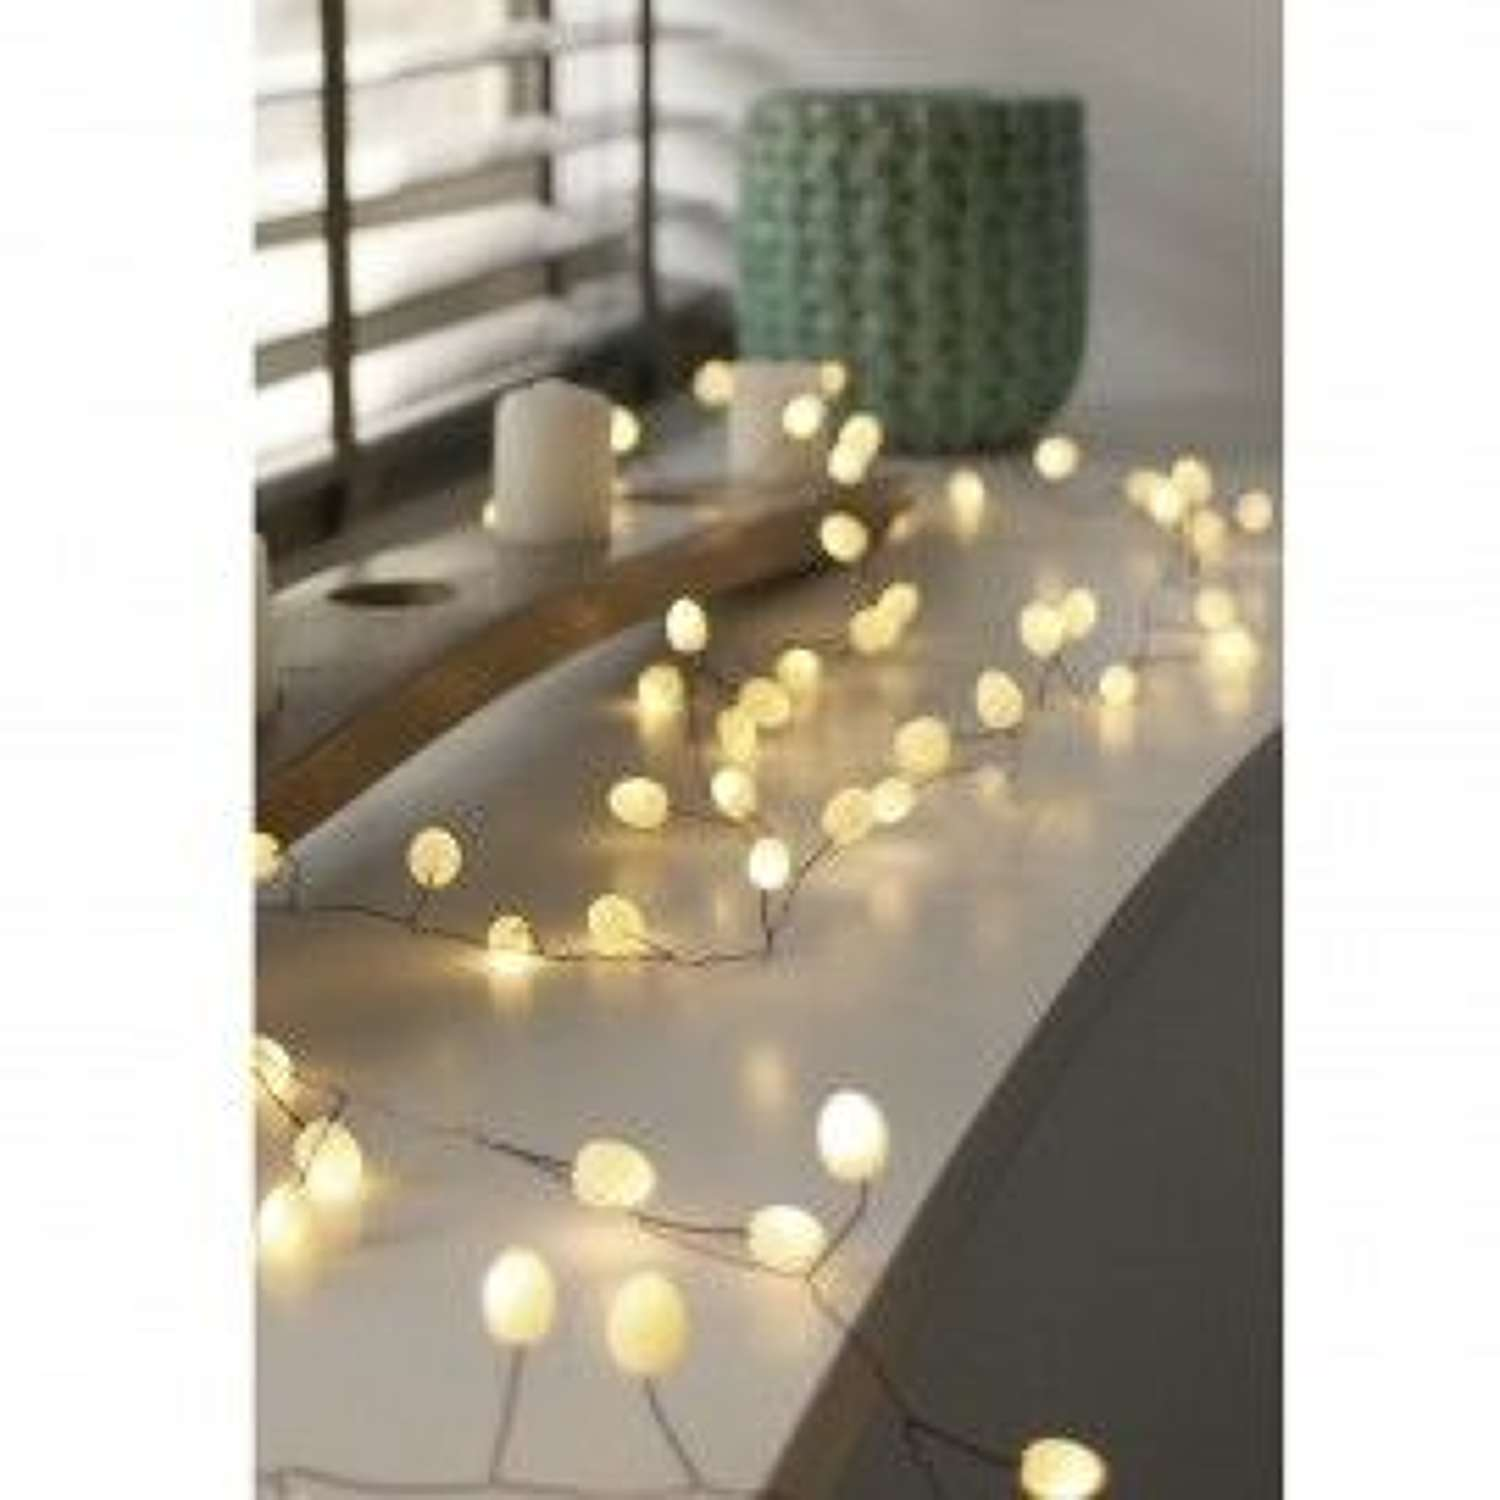 Lightstyle London - Teardrop Opaque Lights (Battery Operated)